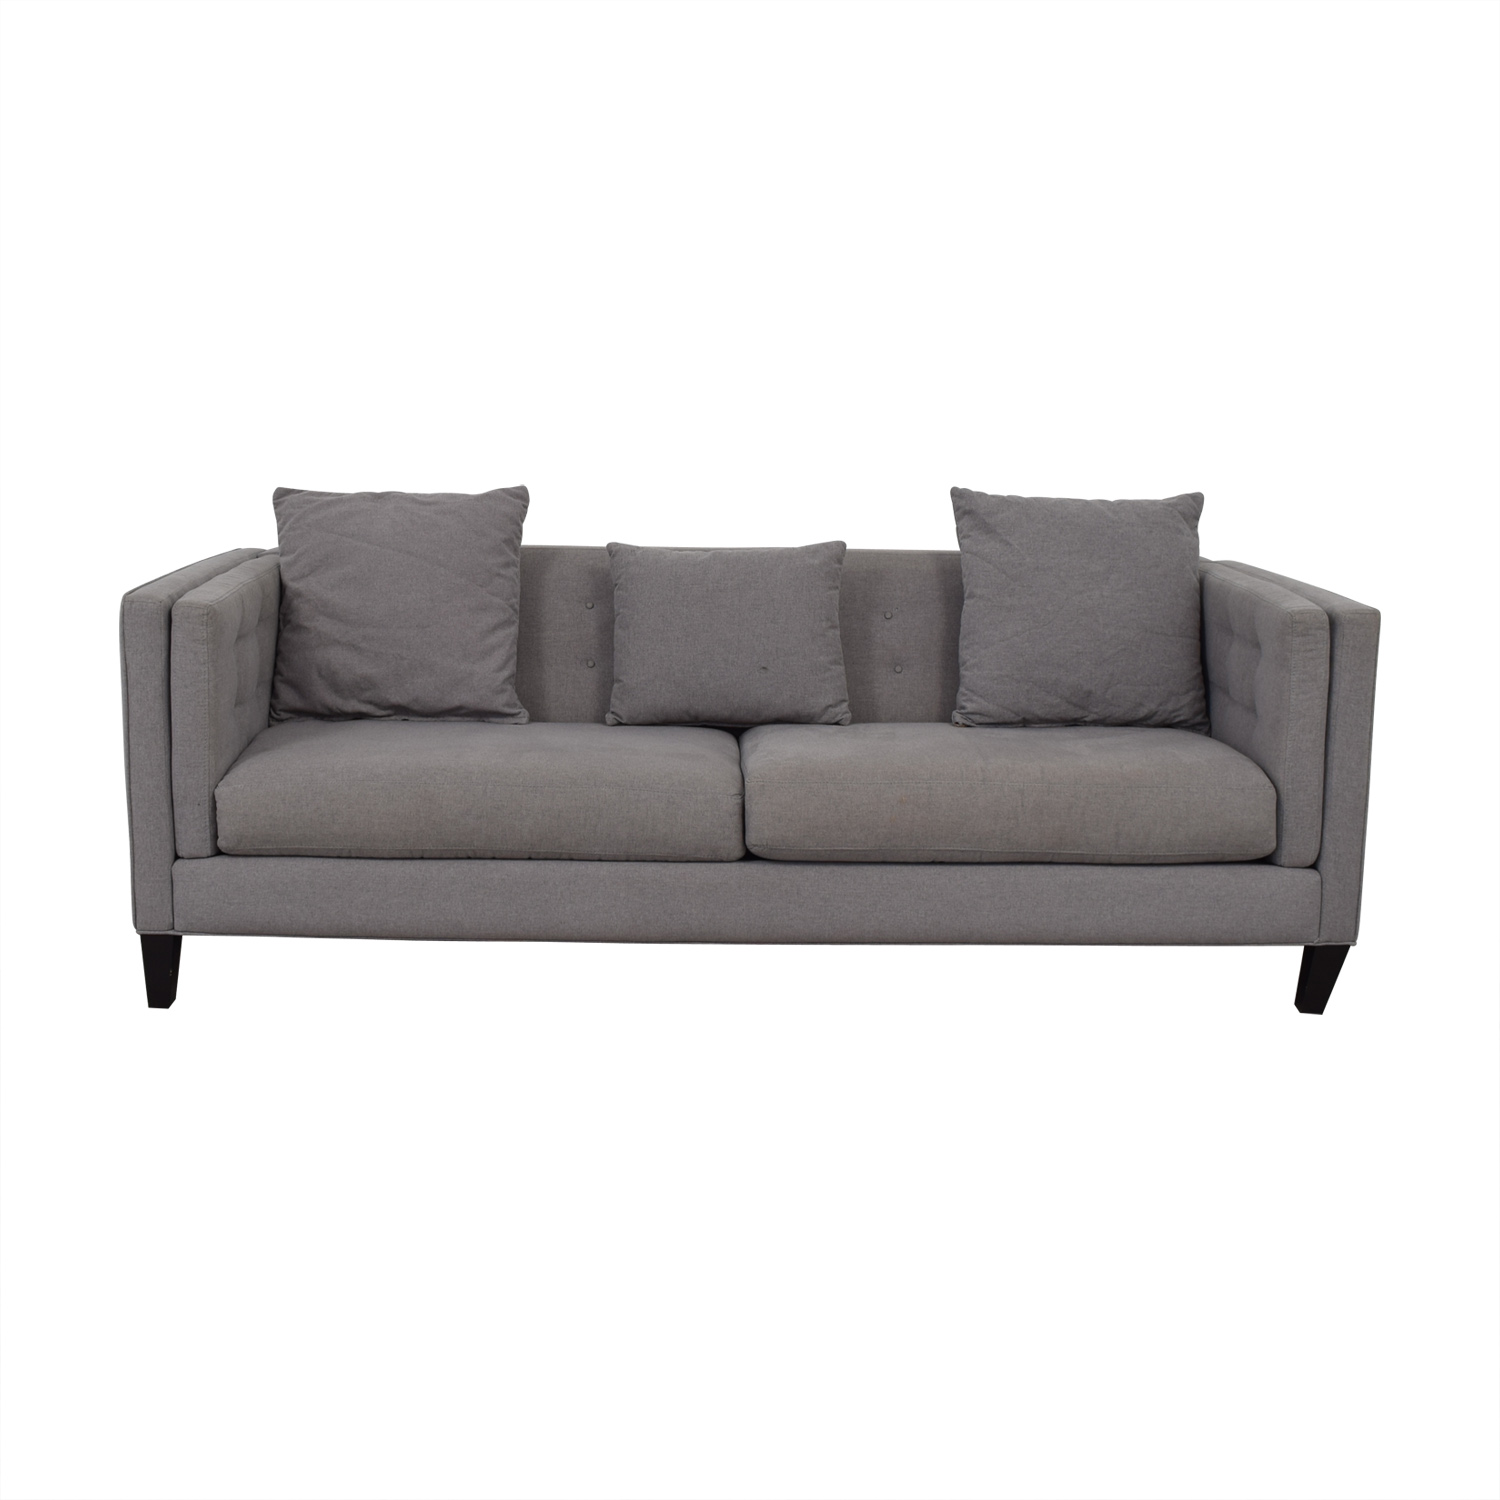 buy Jonathan Lewis Grey Two-Cushion Couch Jonathan Lewis